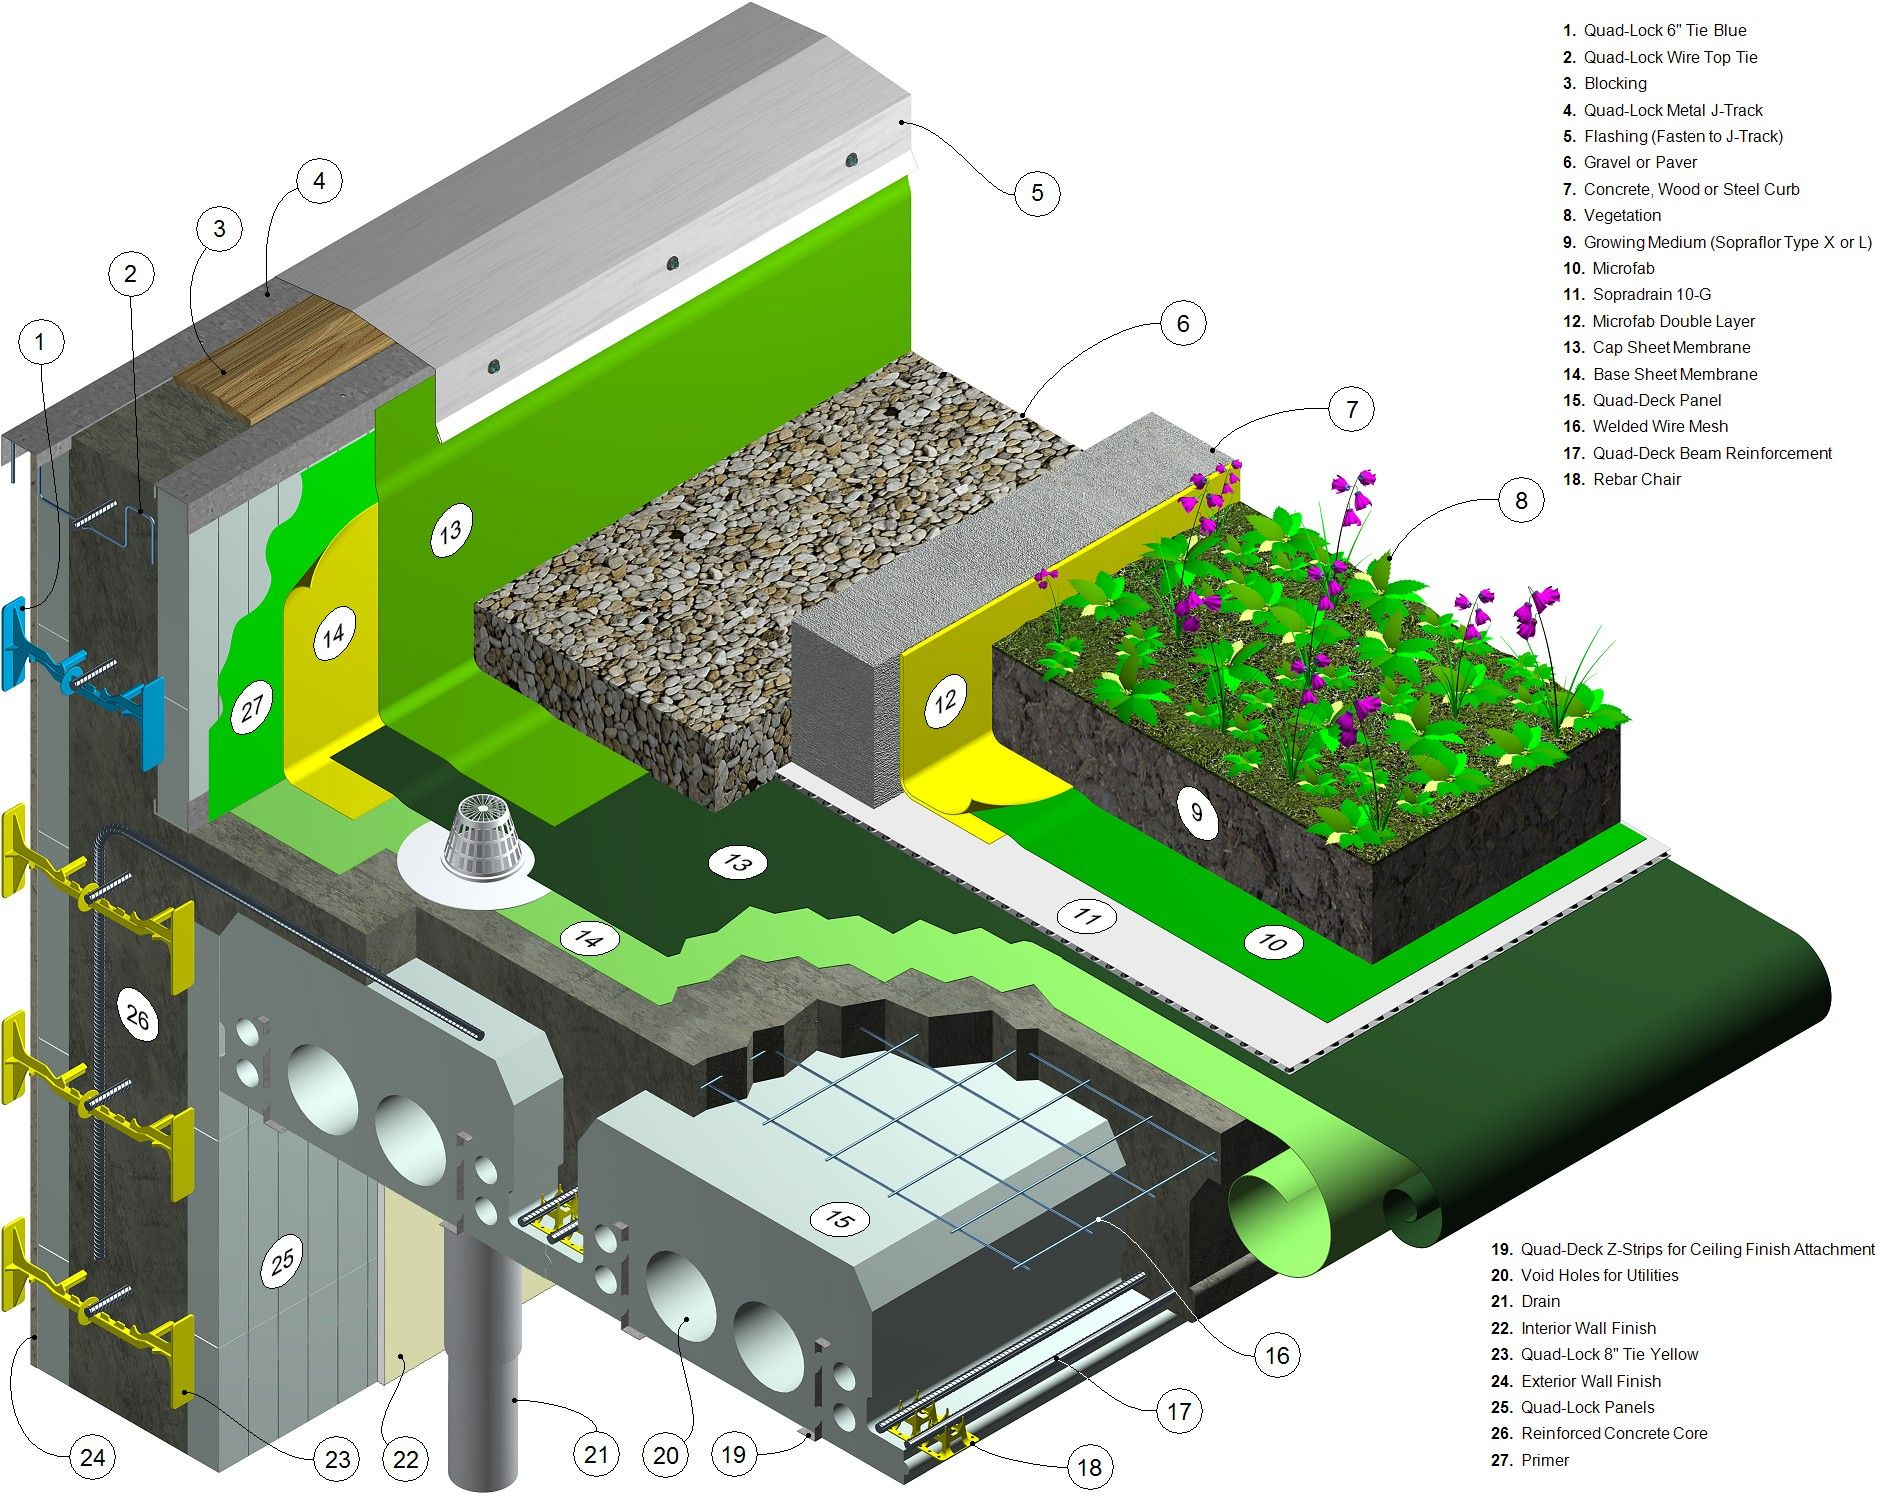 Quad Deck Green Roof Details Green Roof Design Green Roof System Green Roof